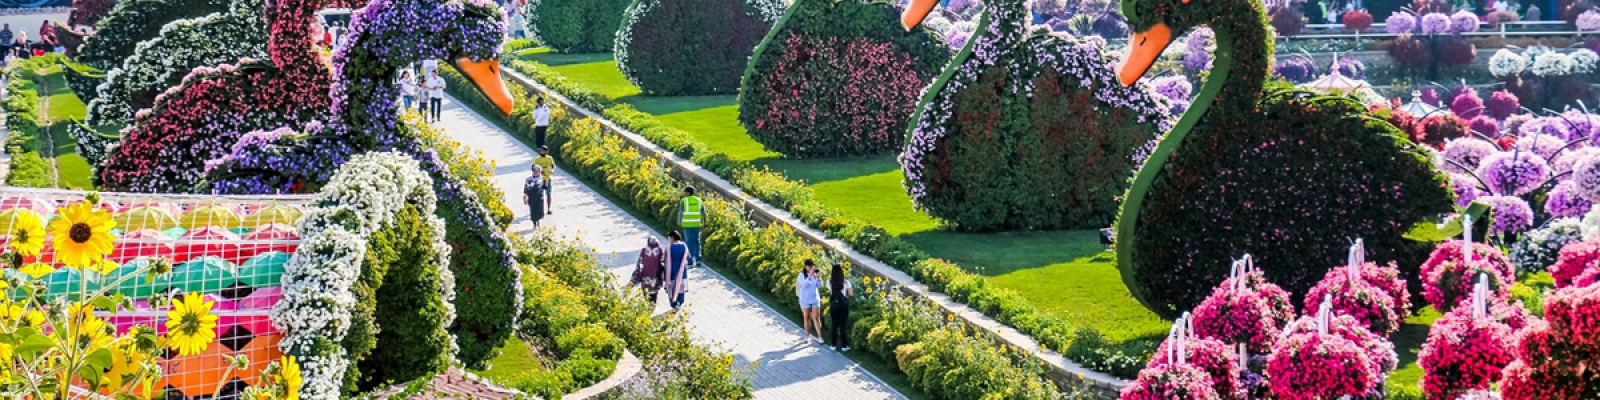 dubai miracle garden tour, dubai miracle garden tour package, dubai global village and miracle garden tour